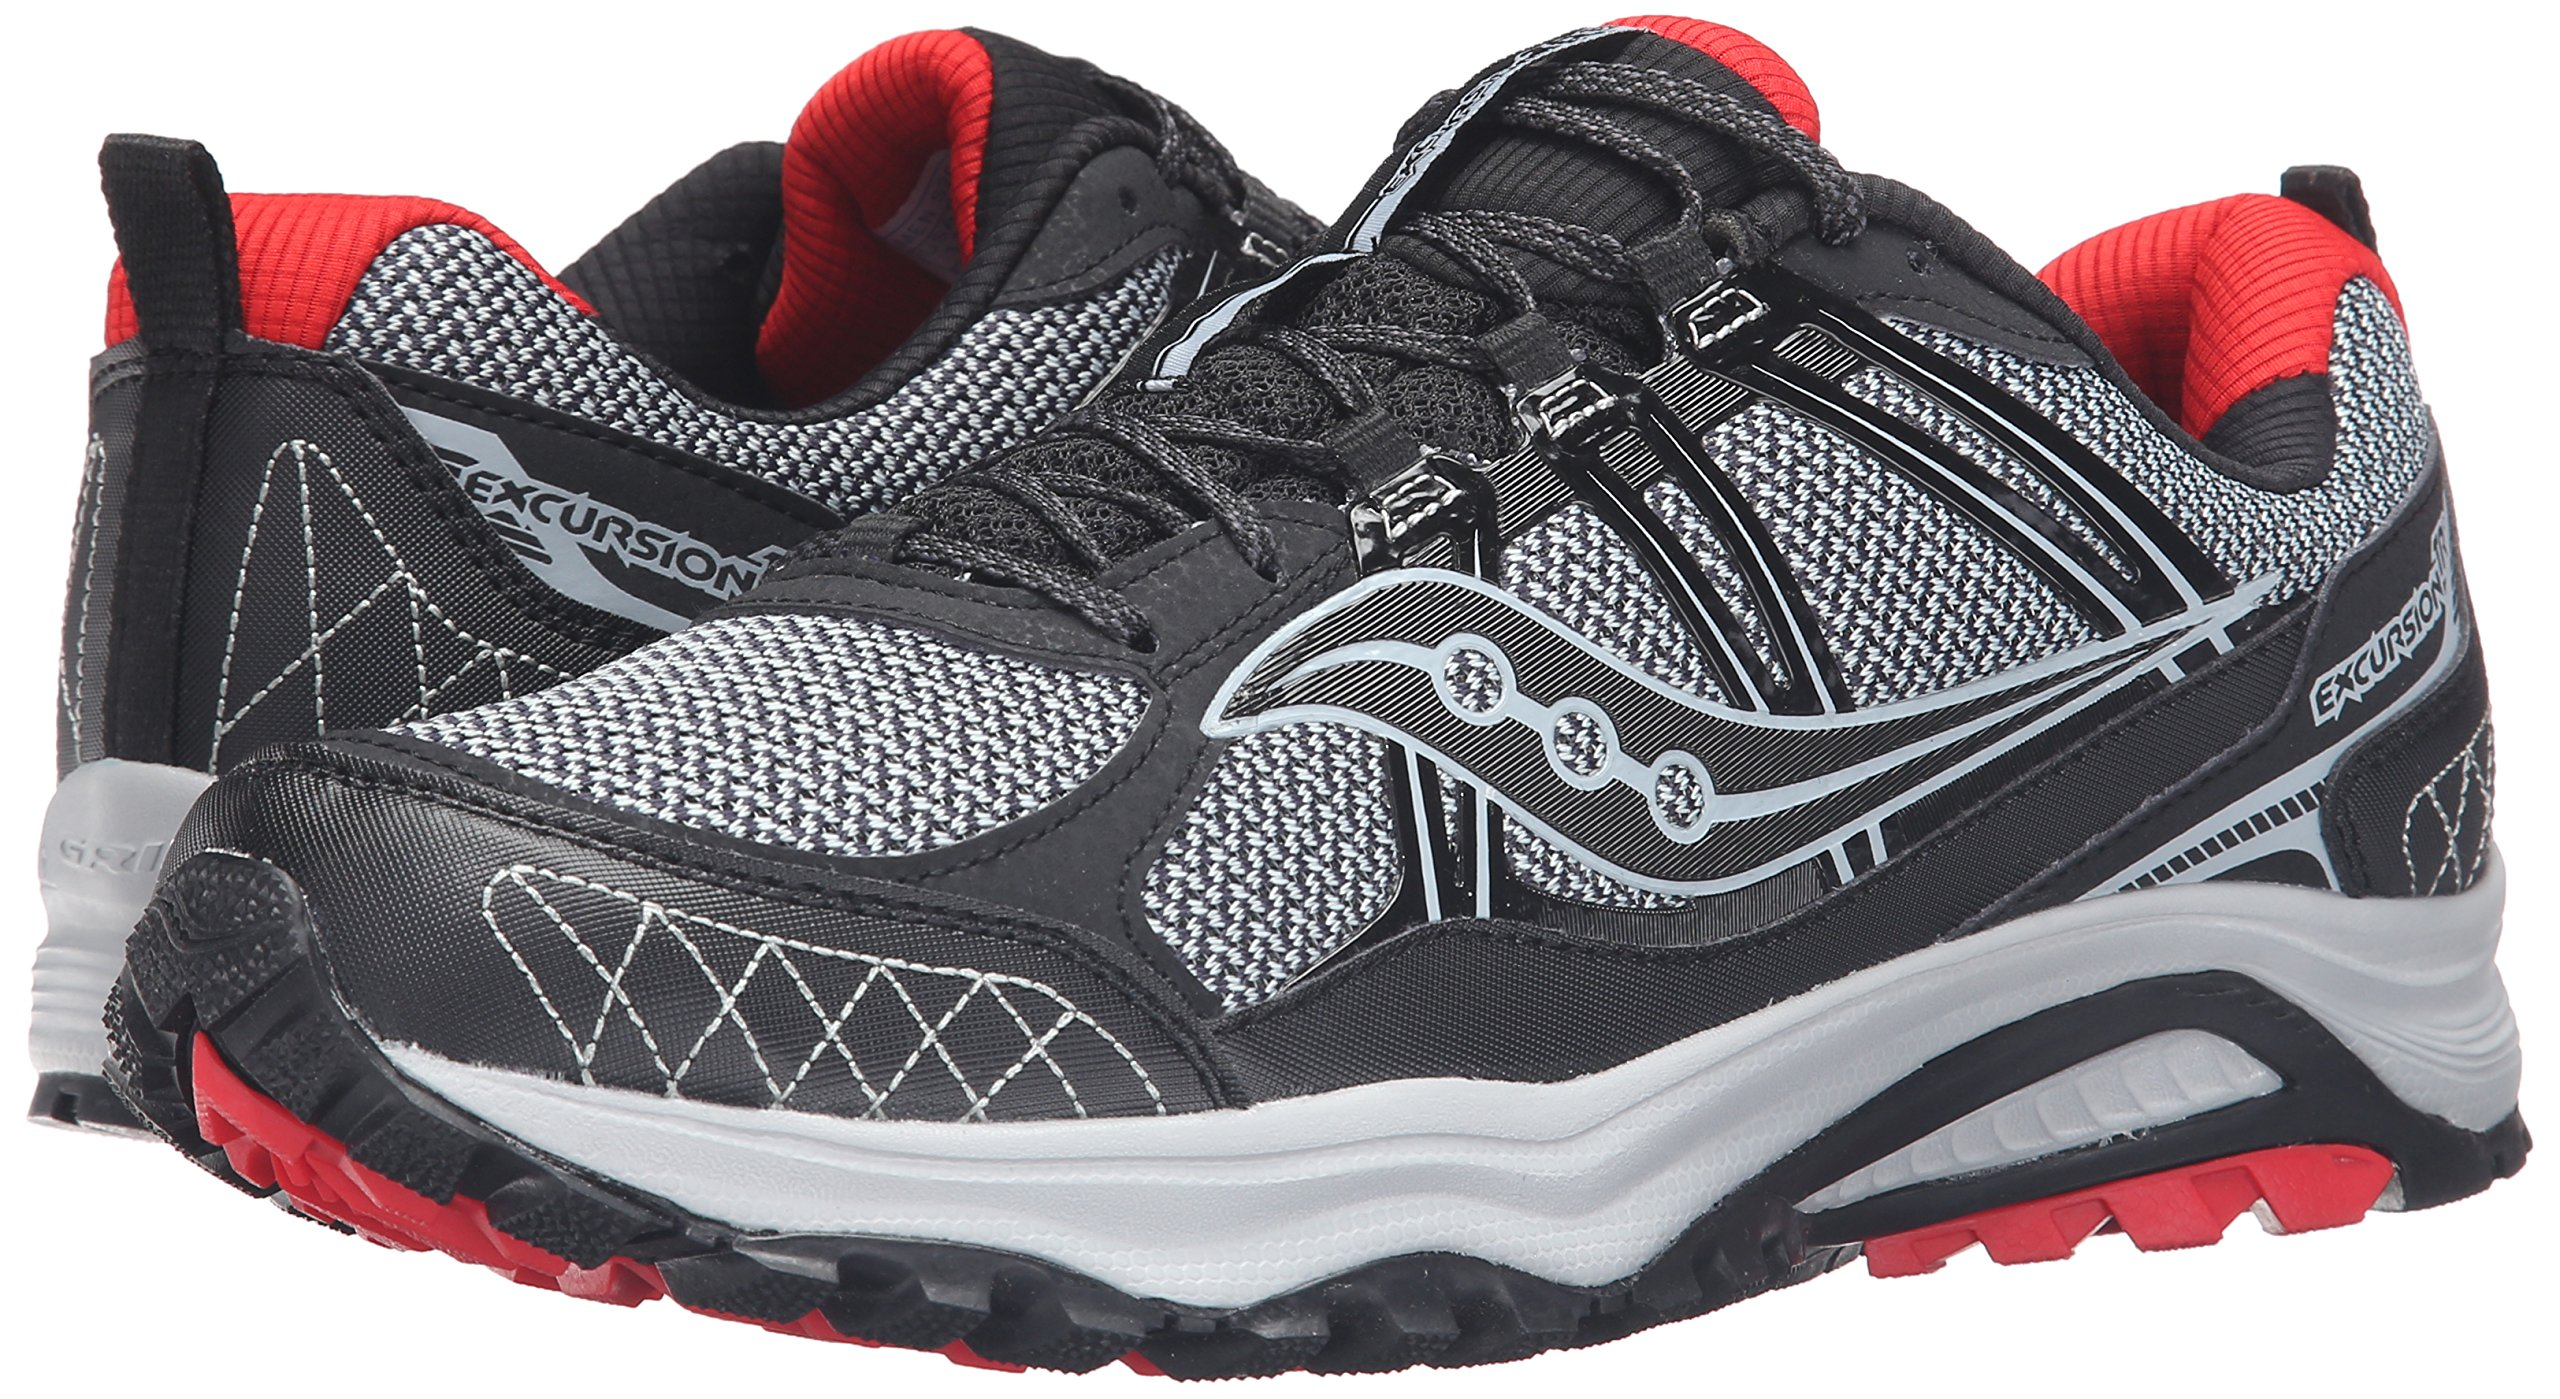 Saucony Men's Grid Excursion TR10 Running Shoe, Grey/Black/Red, 8 M US by Saucony (Image #6)